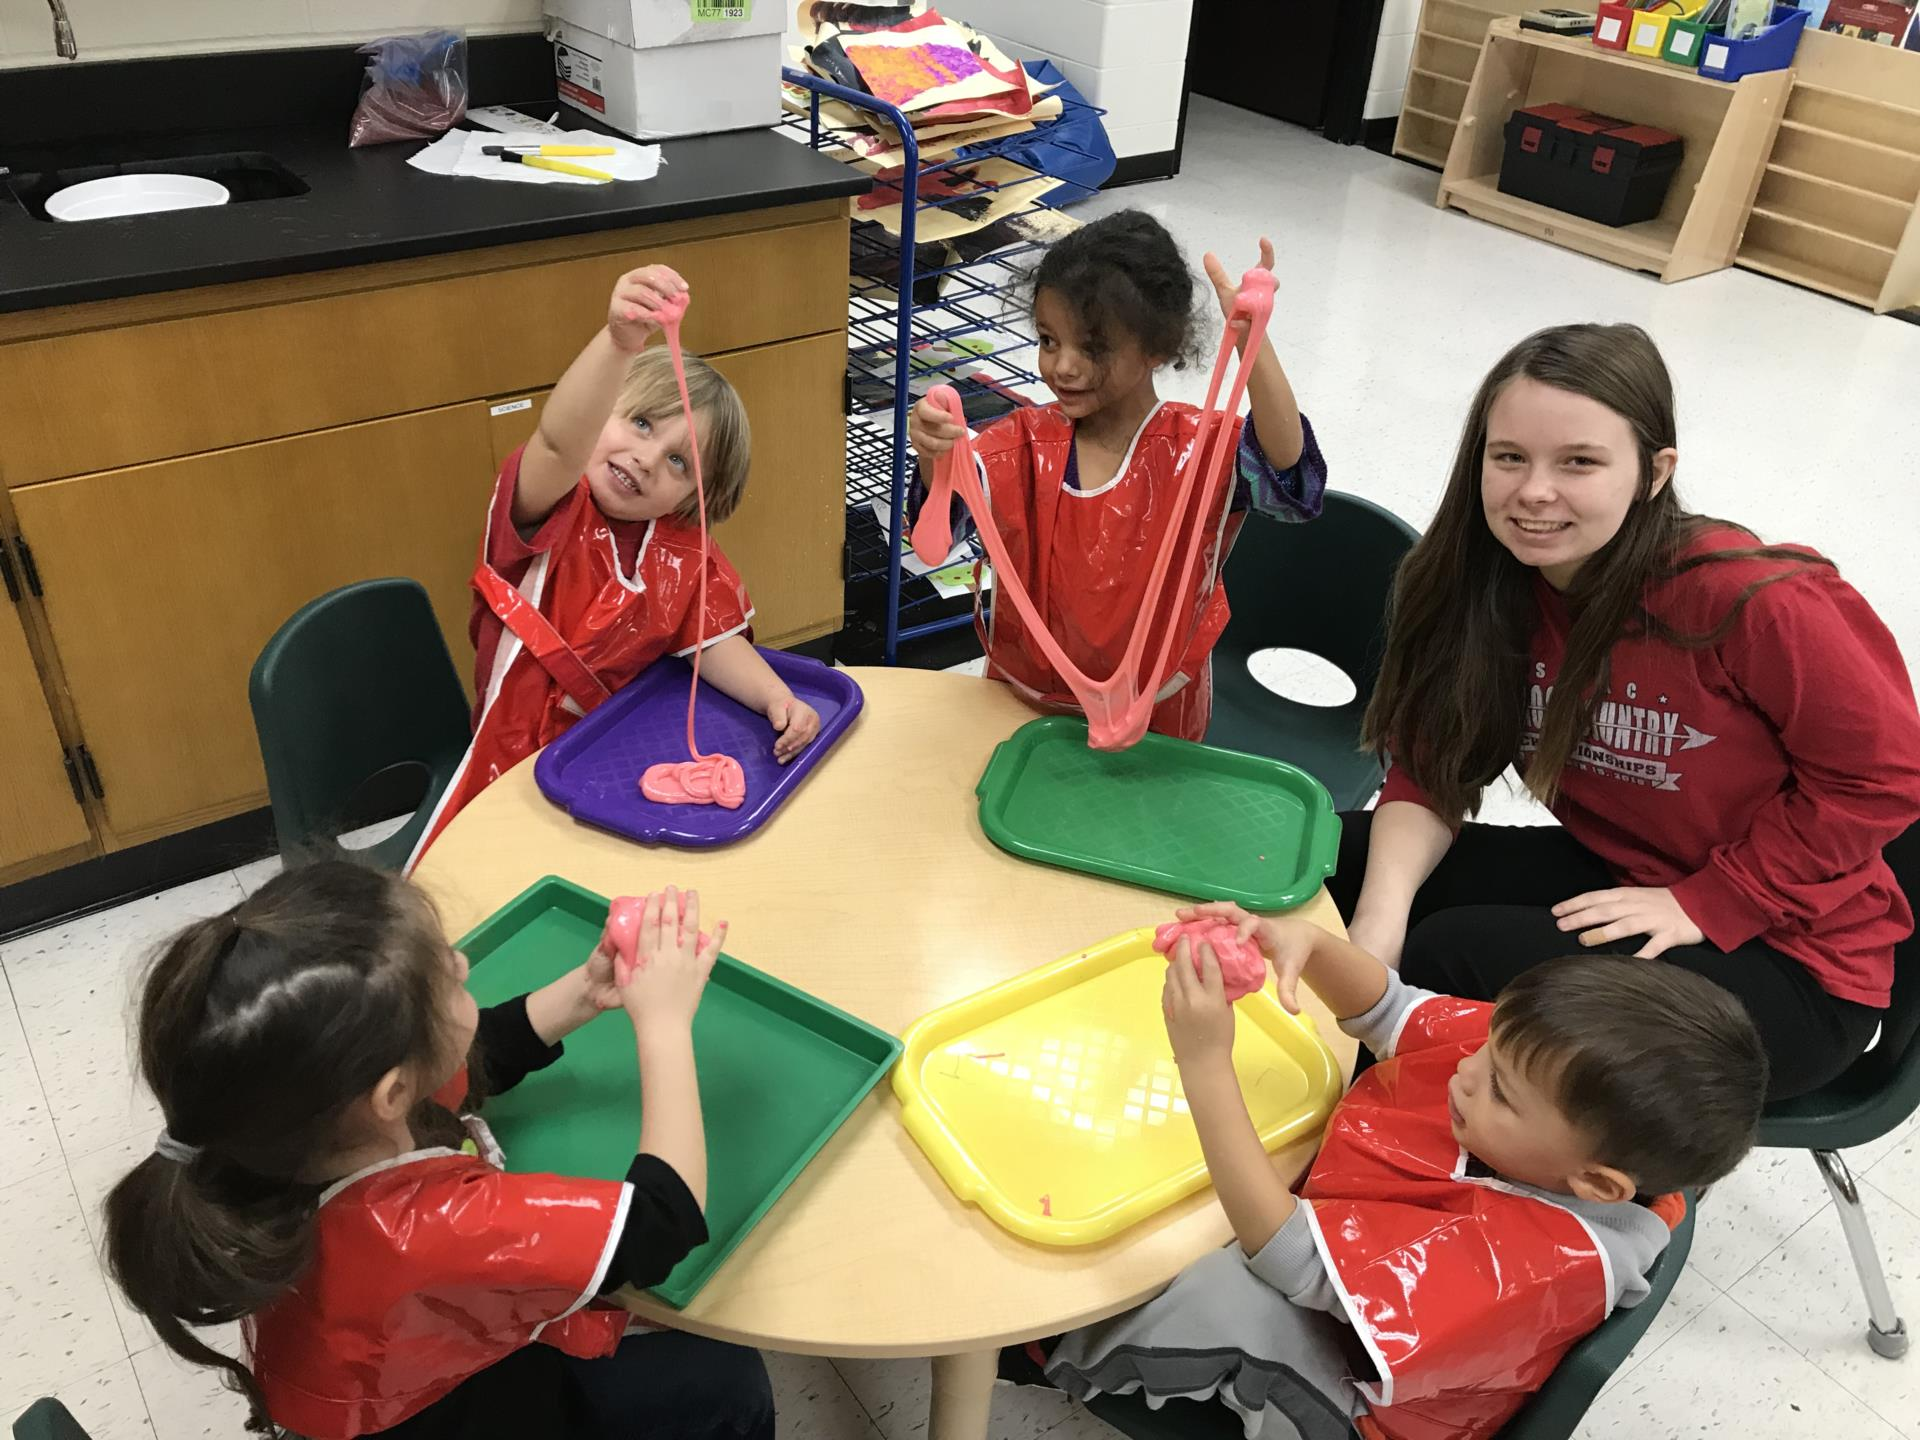 A picture of students and preschoolers playing with slime